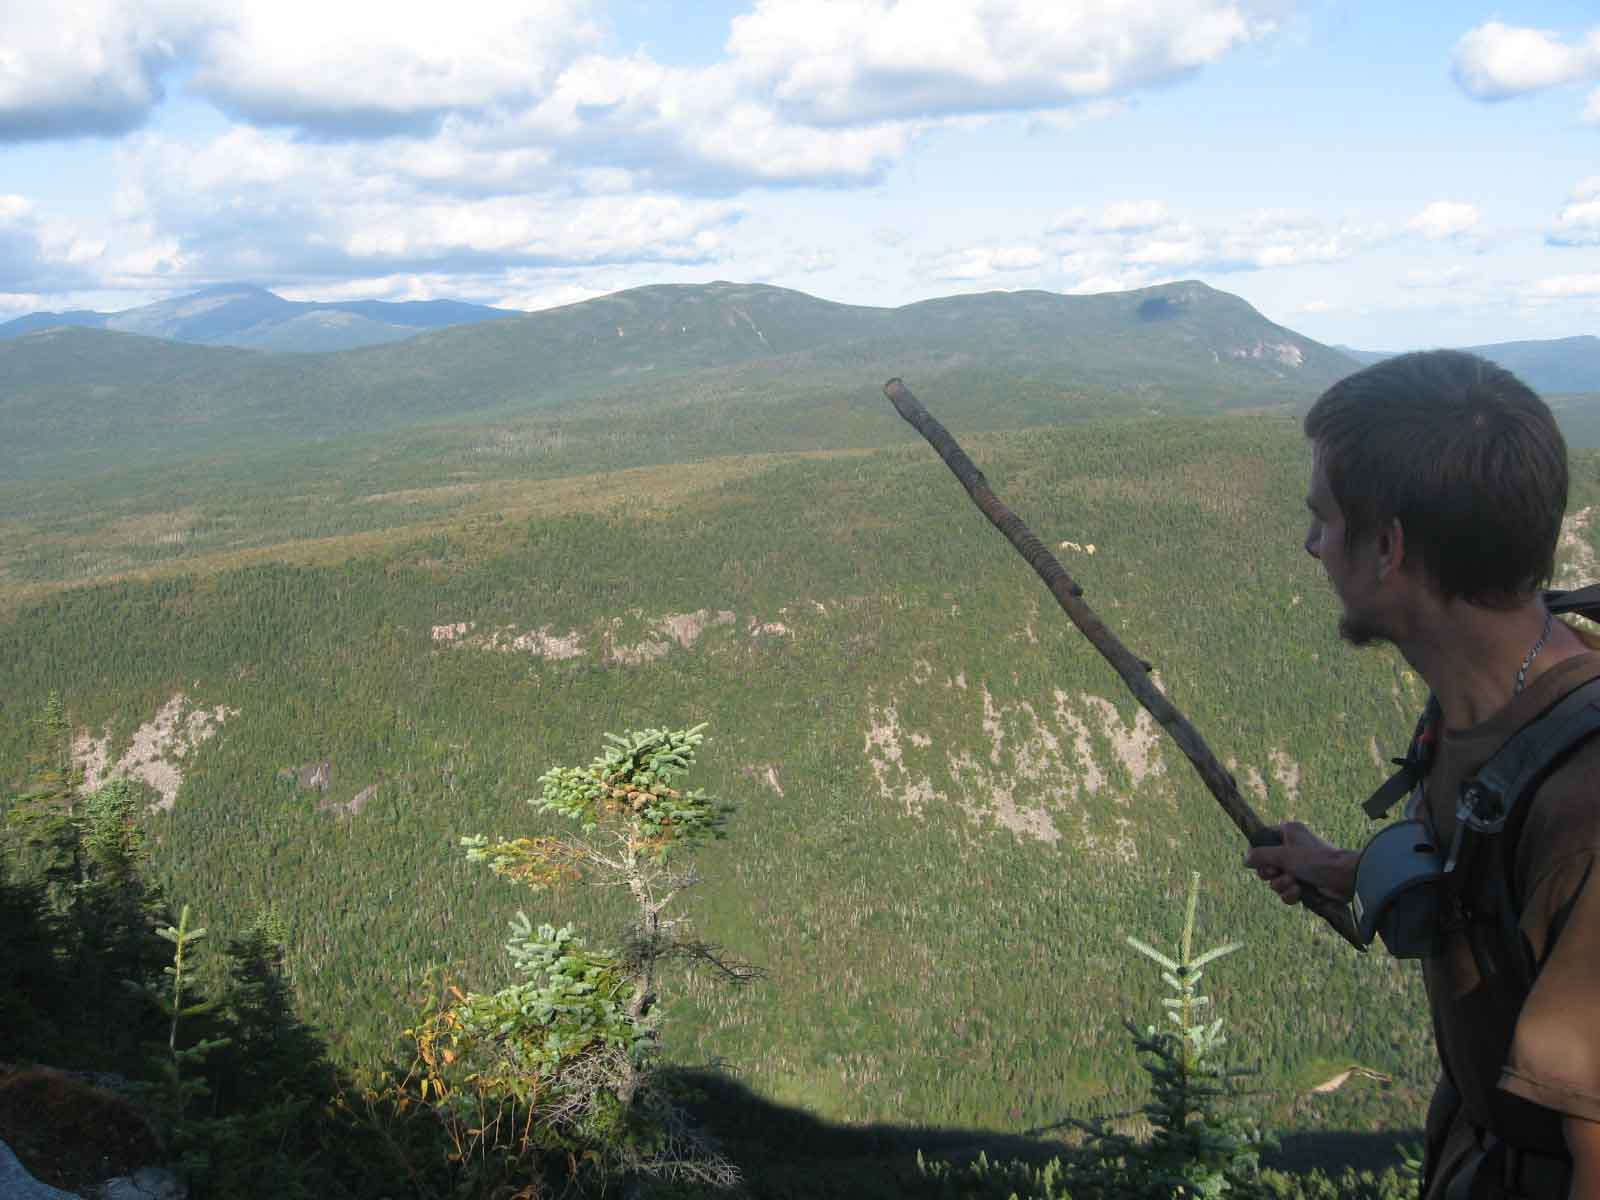 Turok pointing out Mount Washington in the distance with his hiking stick.